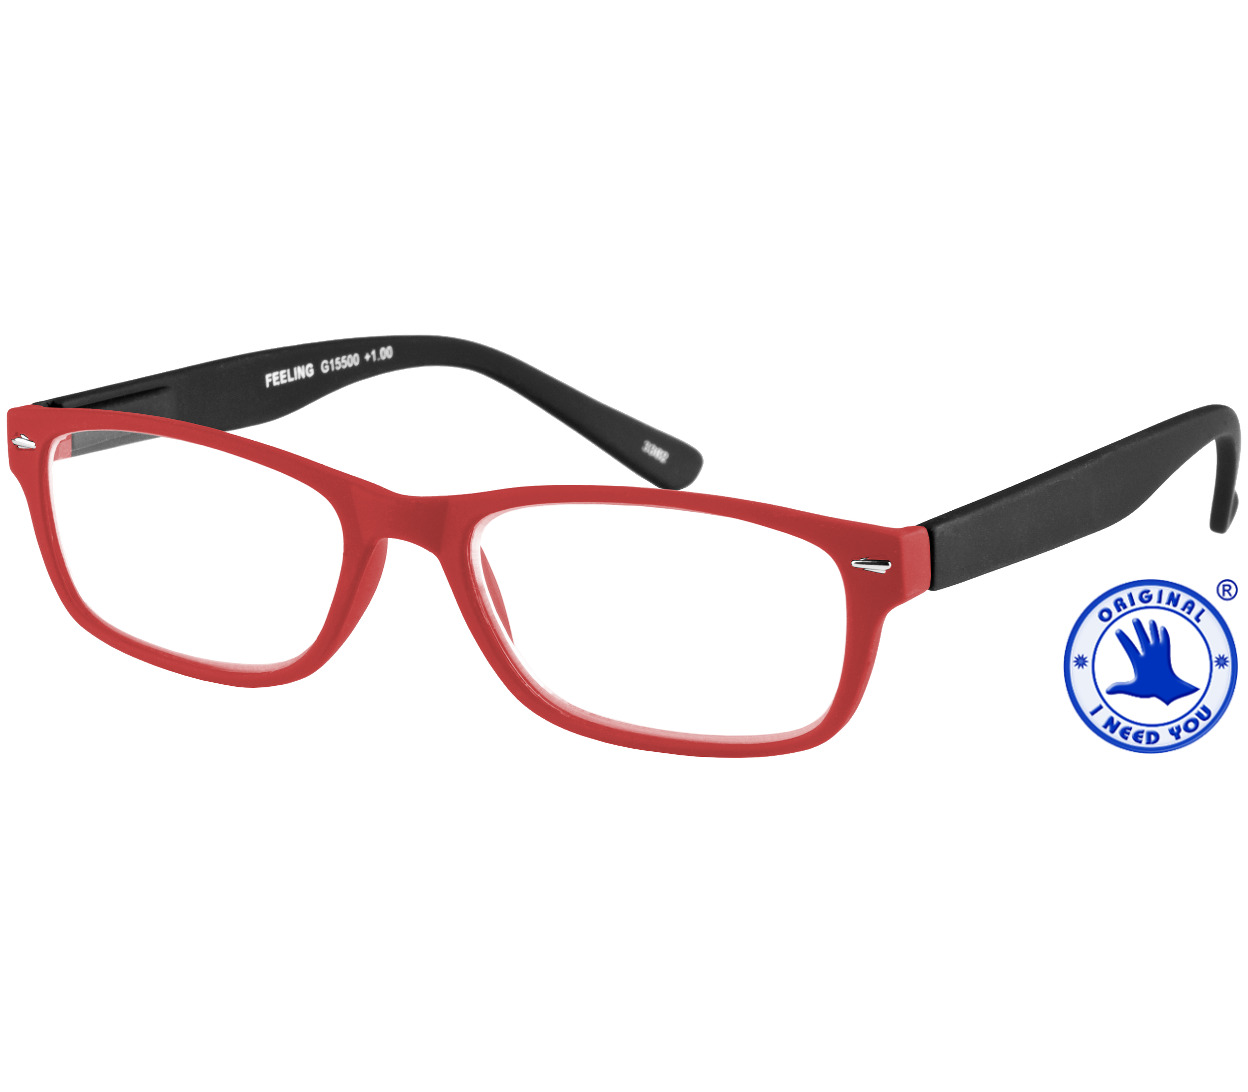 Feeling (Red) Classic Reading Glasses